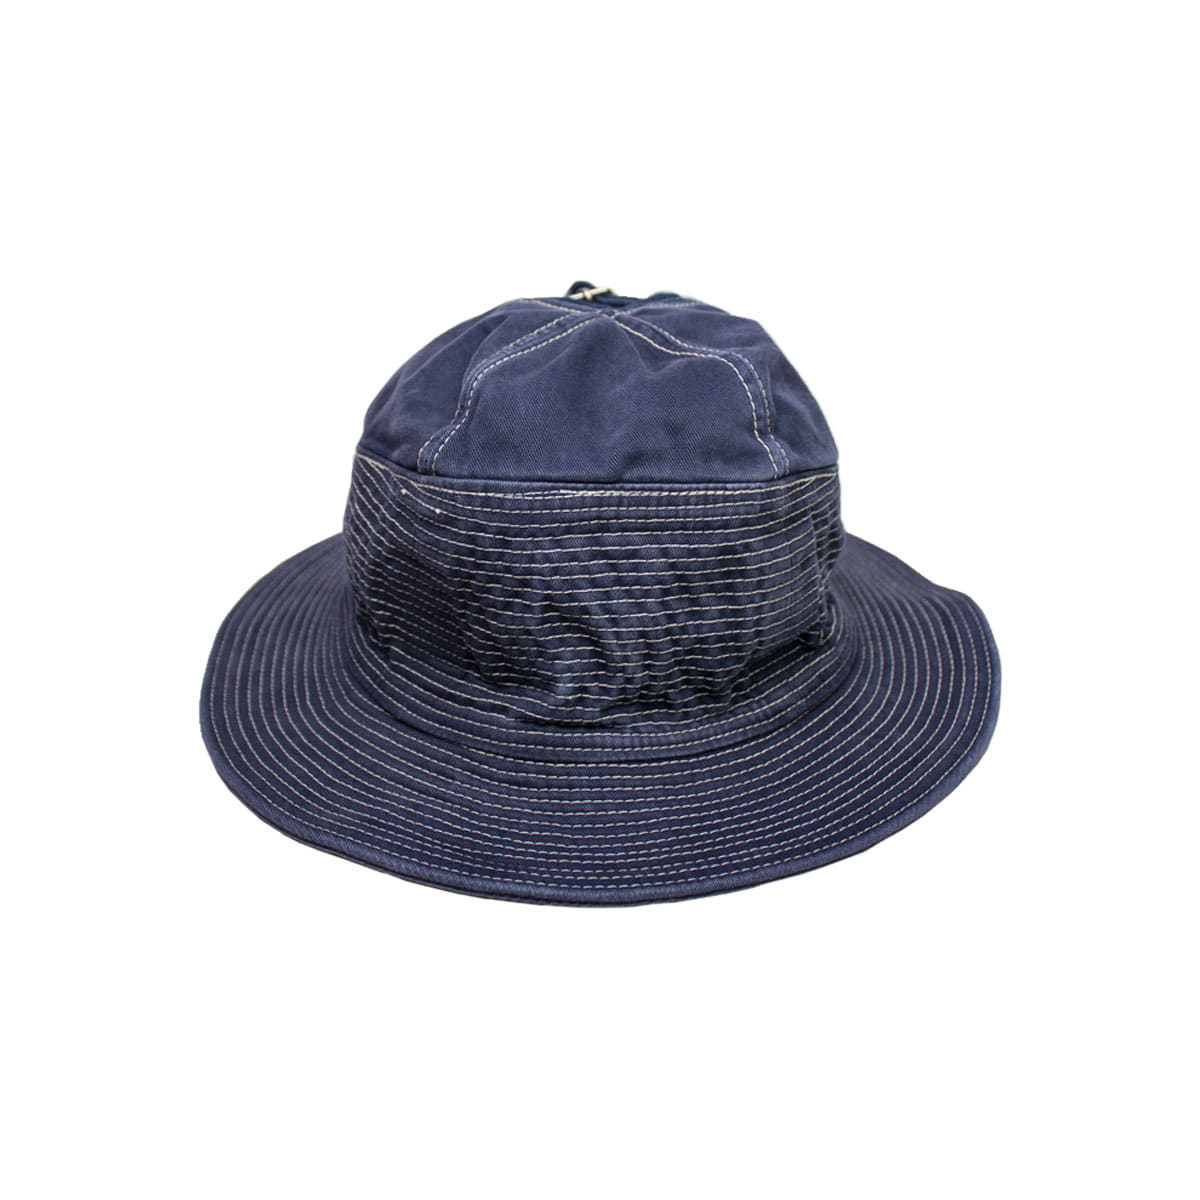 [KAPITAL] THE OLD MAN & SEA HAT 'NAVY'